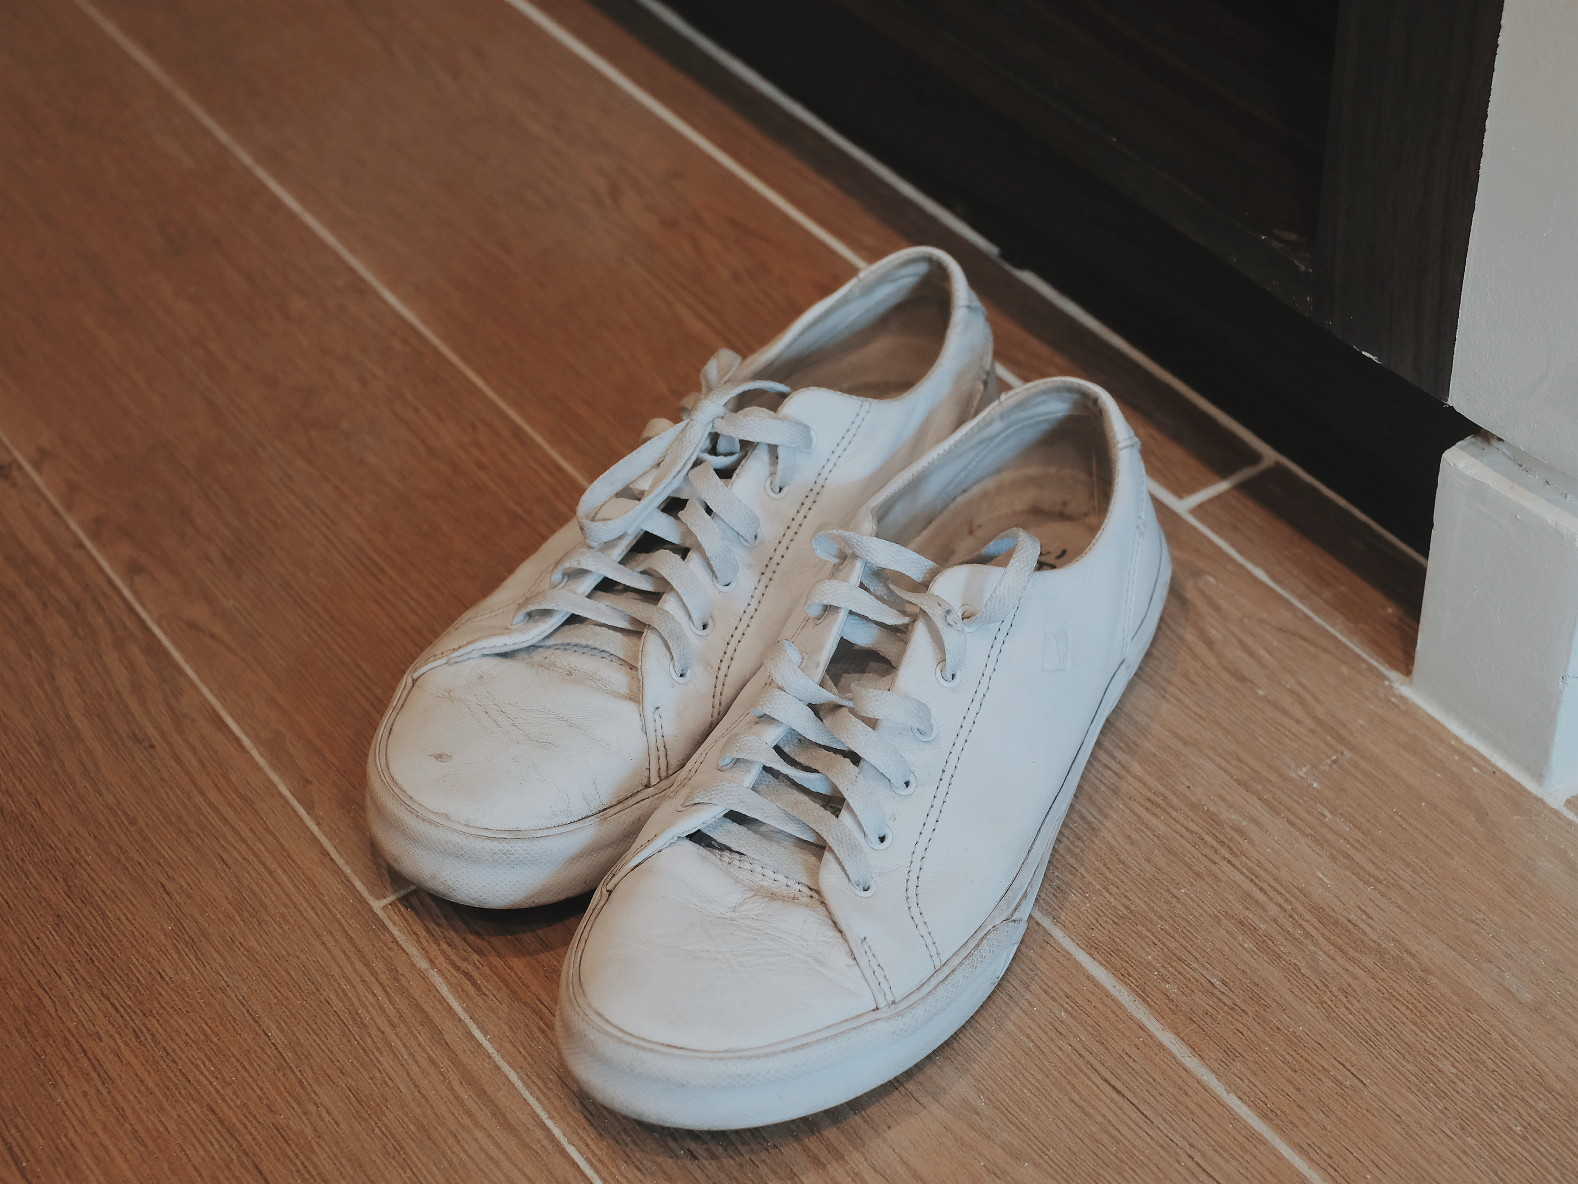 How to Clean White Leather Sneakers: Beach Born All-Purpose Cleanser